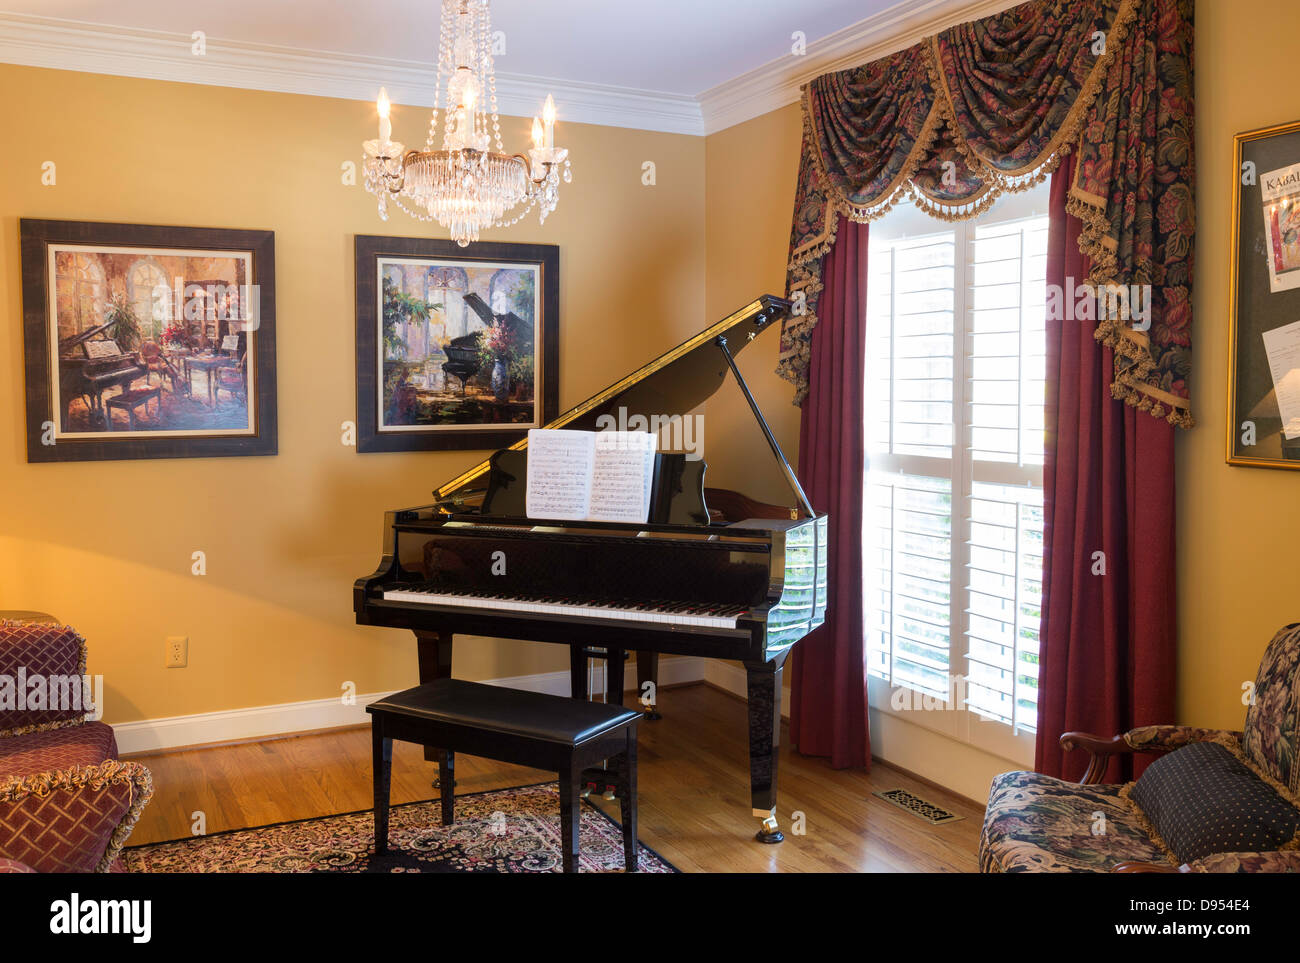 luxury-home-interior-room-with-grand-piano-D954E4 Palacio Home Furniture on davis home furniture, martin home furniture, parker home furniture, nautilus home furniture,